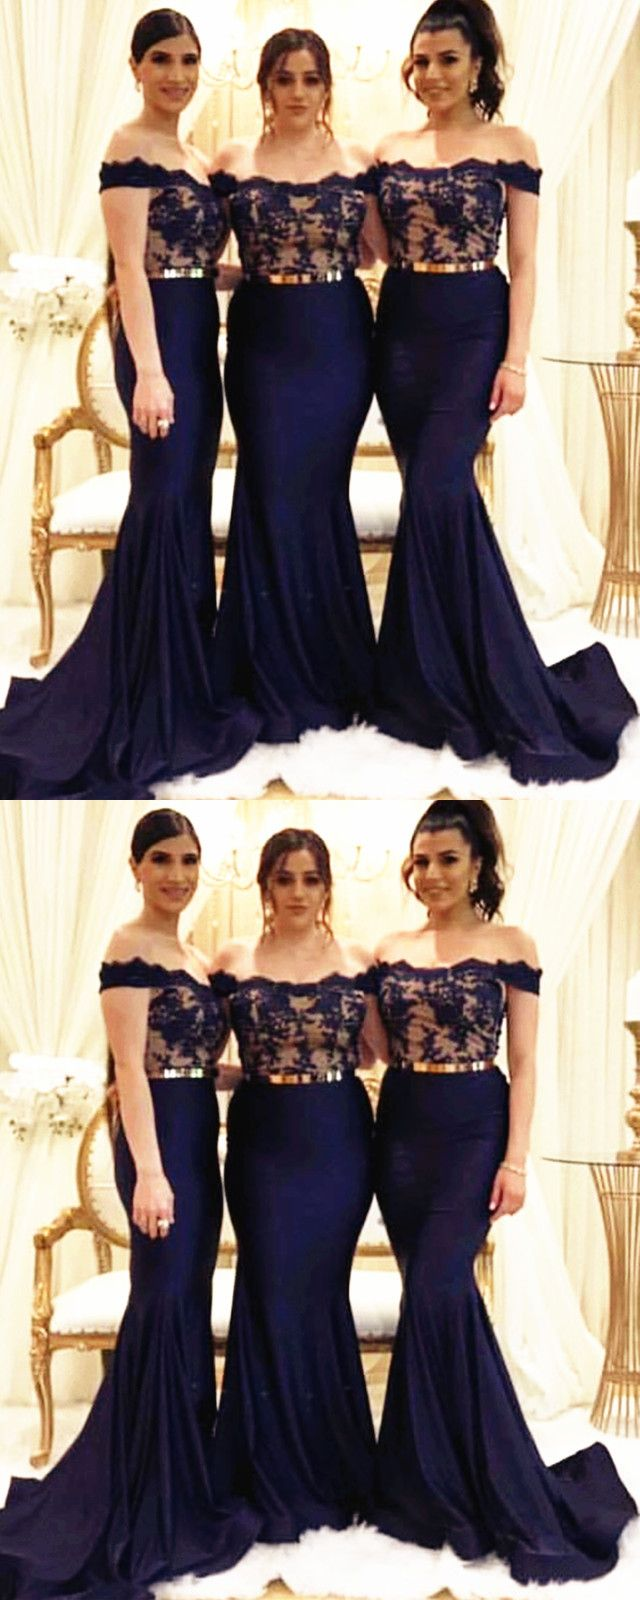 Lace Appliques Mermaid Bridesmaid Dresses With Gold Belt Mermaid Bridesmaid Dresses Short Lace Bridesmaid Dresses Long Navy Blue Bridesmaid Dresses